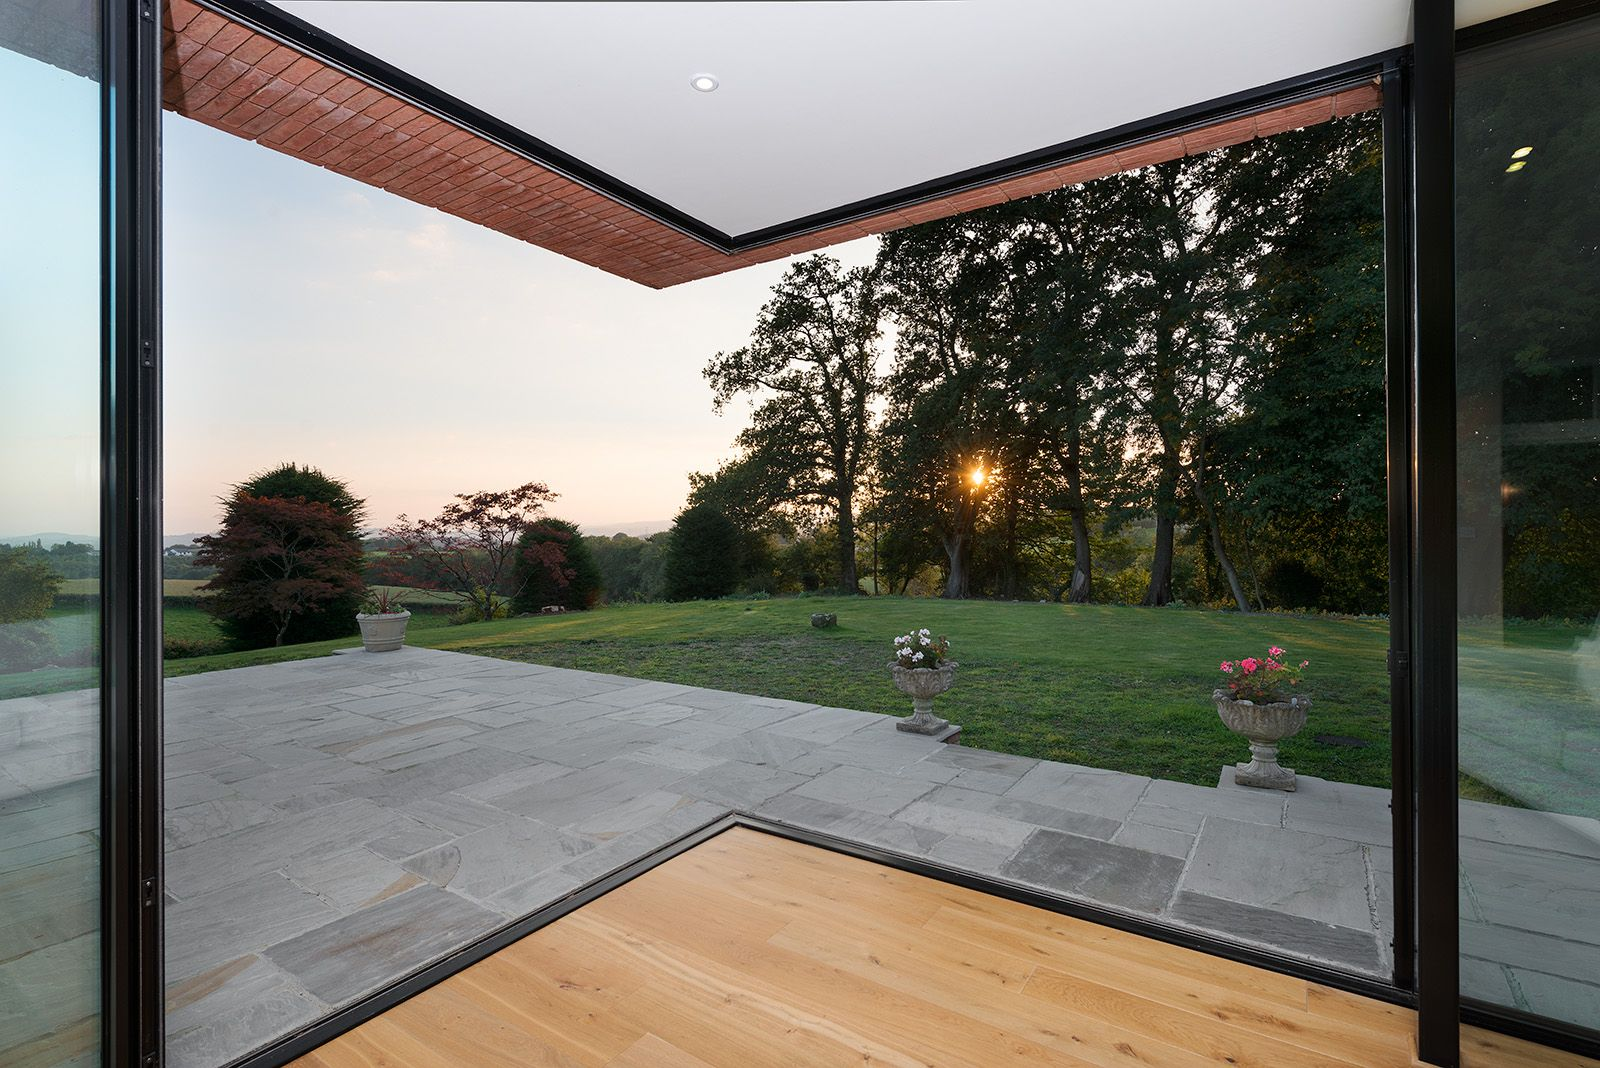 House Refurbishment And Extension With Floating Roof Above Open Sliding Glass Door Corner Glass Doors Patio Barn Doors Sliding Beautiful Doors